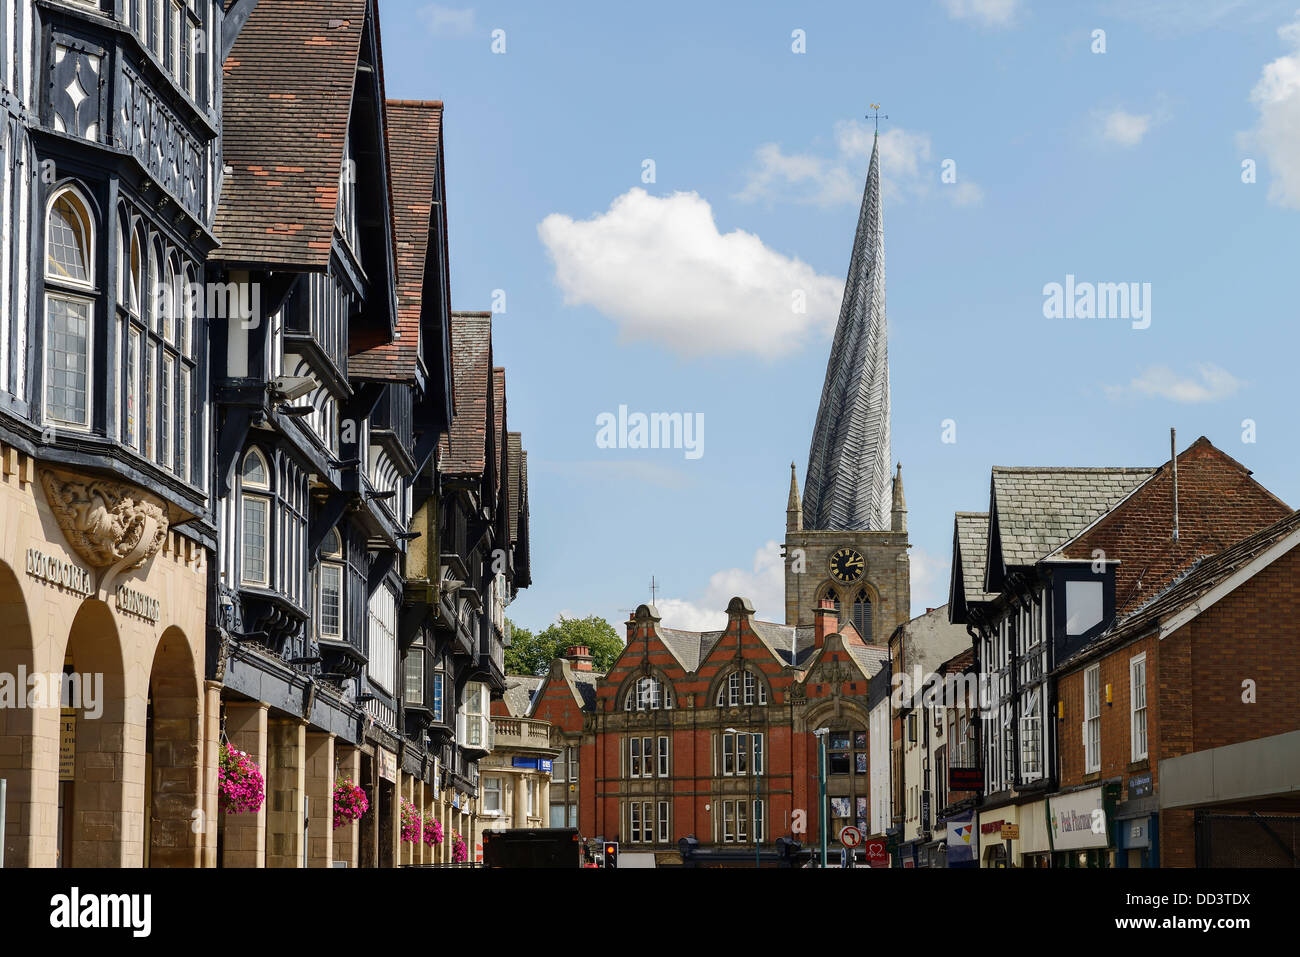 Chesterfield town centre buildings and the crooked spire of St Marys's Church - Stock Image